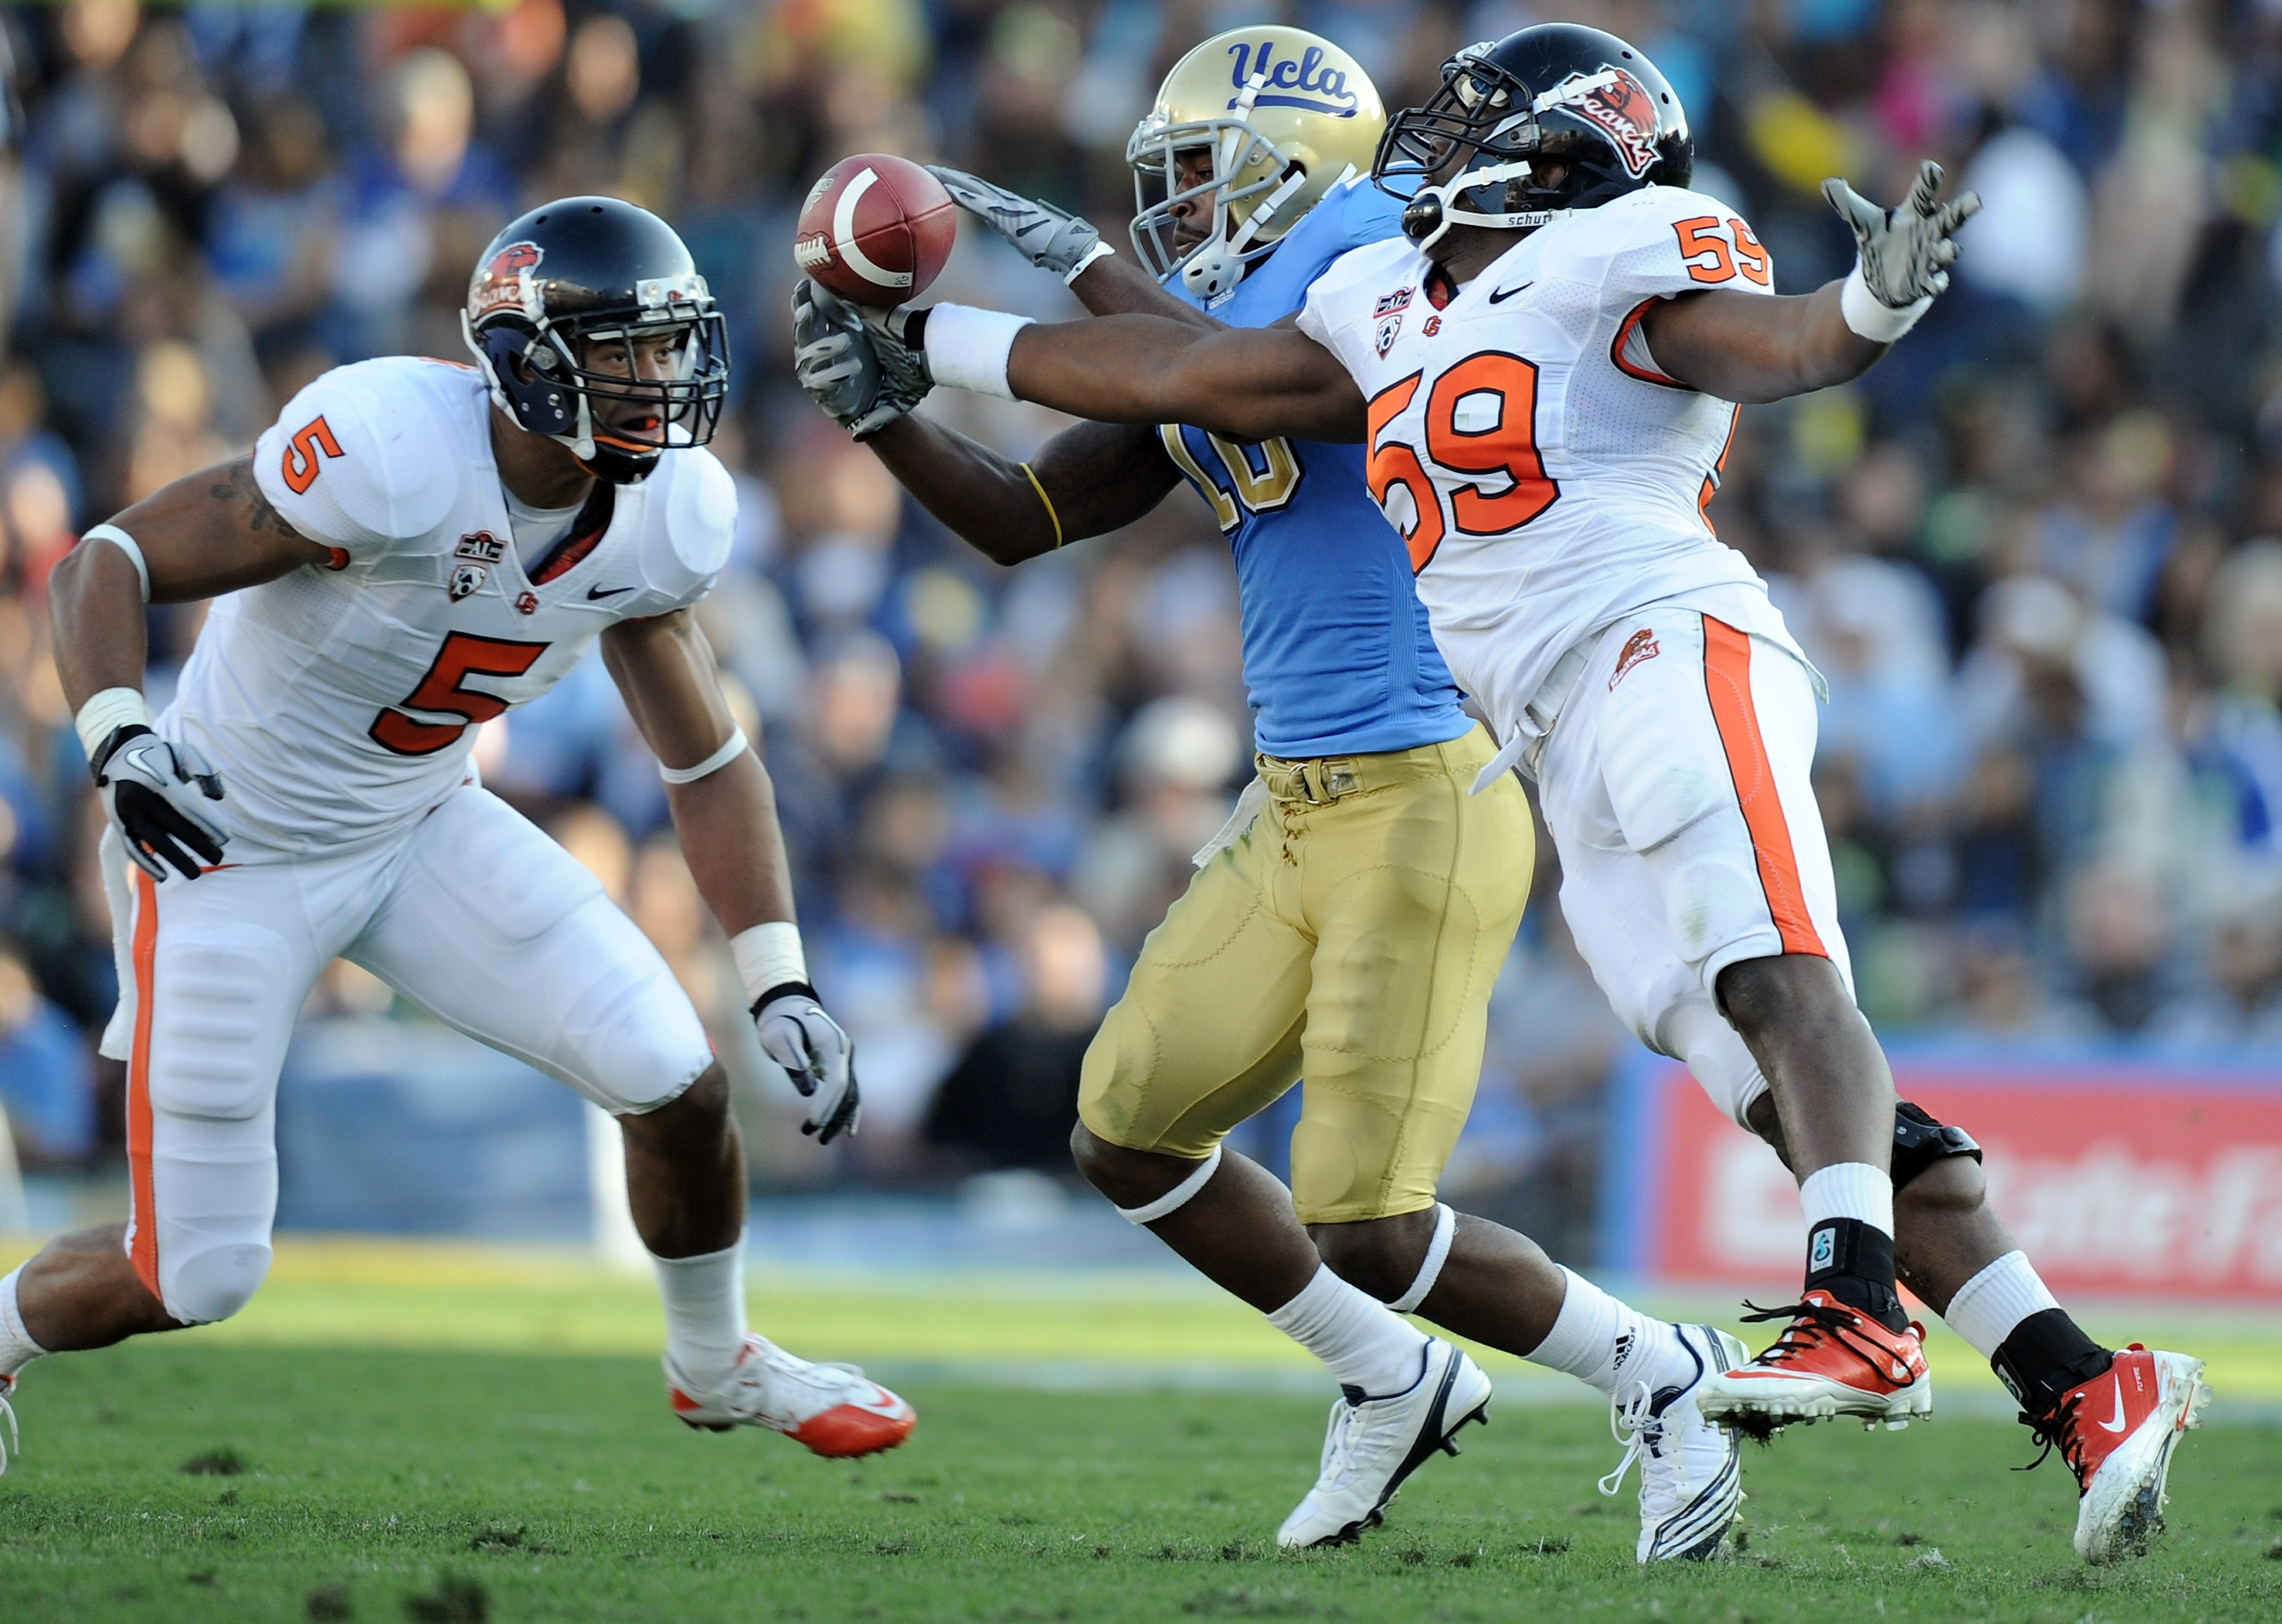 PASADENA, CA - NOVEMBER 06:  Akeem Ayers #10 of the UCLA Bruins makes a catch in front of Dwight Roberson #59 and Cameron Collins #5 of the Oregon State Beavers at the Rose Bowl on November 6, 2010 in Pasadena, California.  (Photo by Harry How/Getty Image